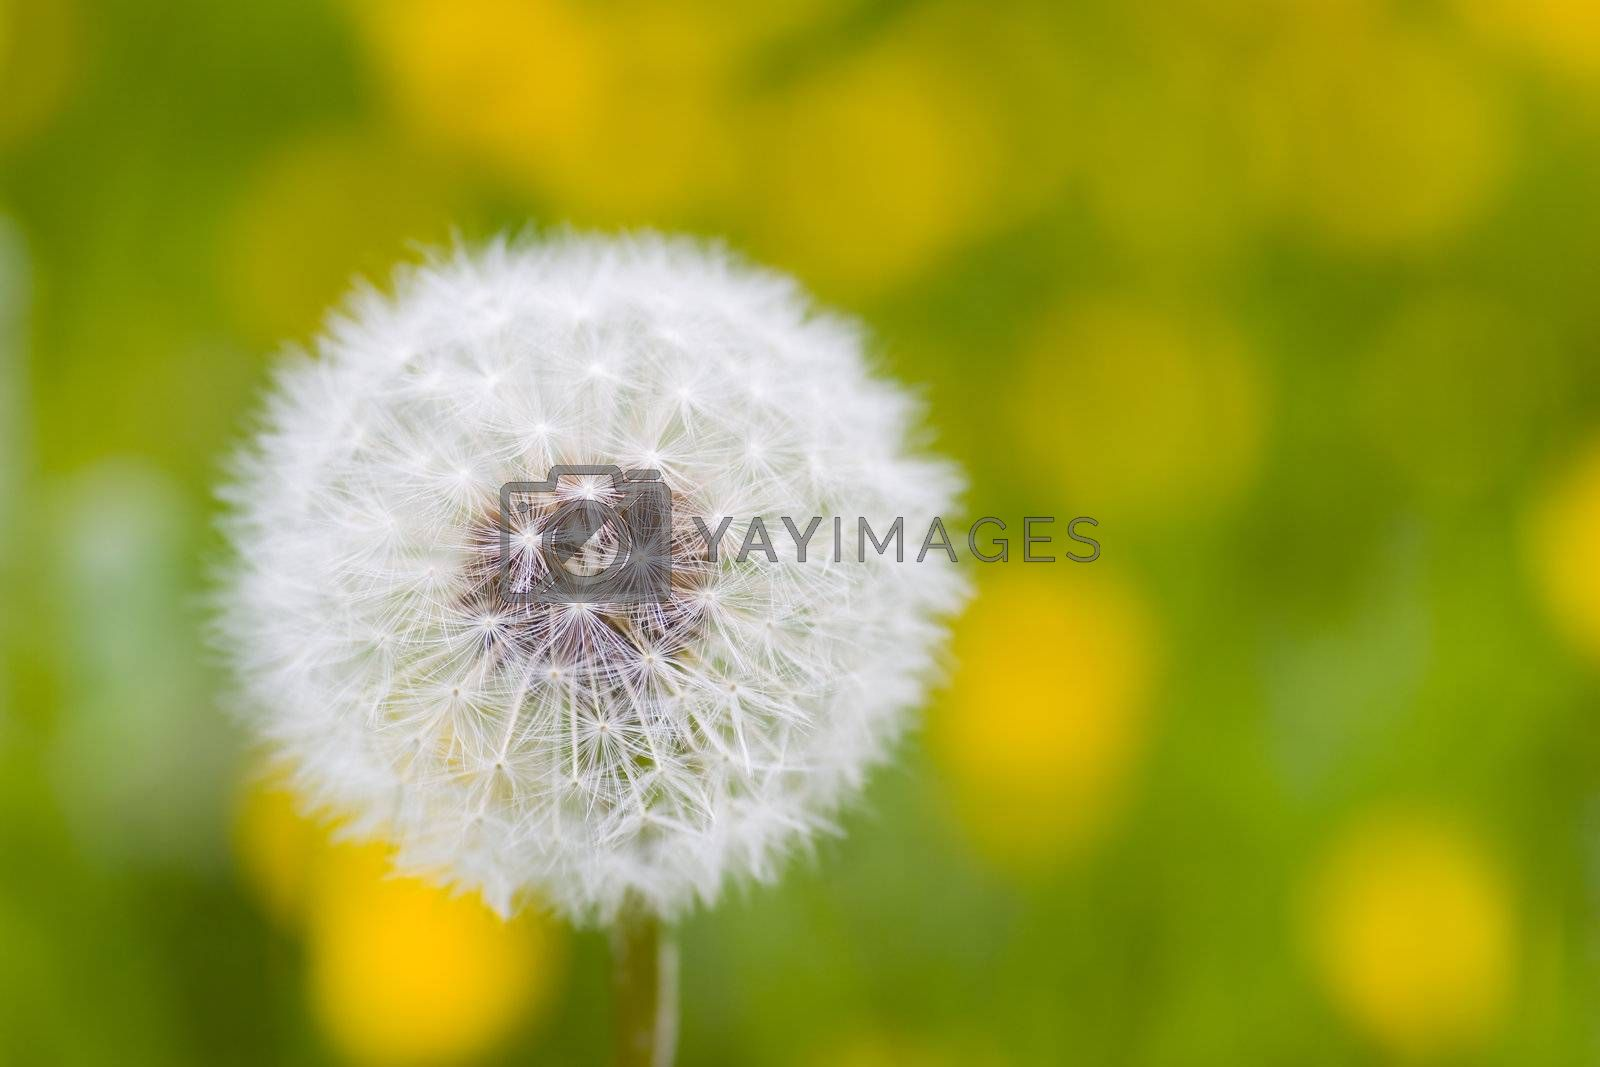 Close-up of a dandelion in a green meadow with yellow flowers. Focus only on the center of the dandelion